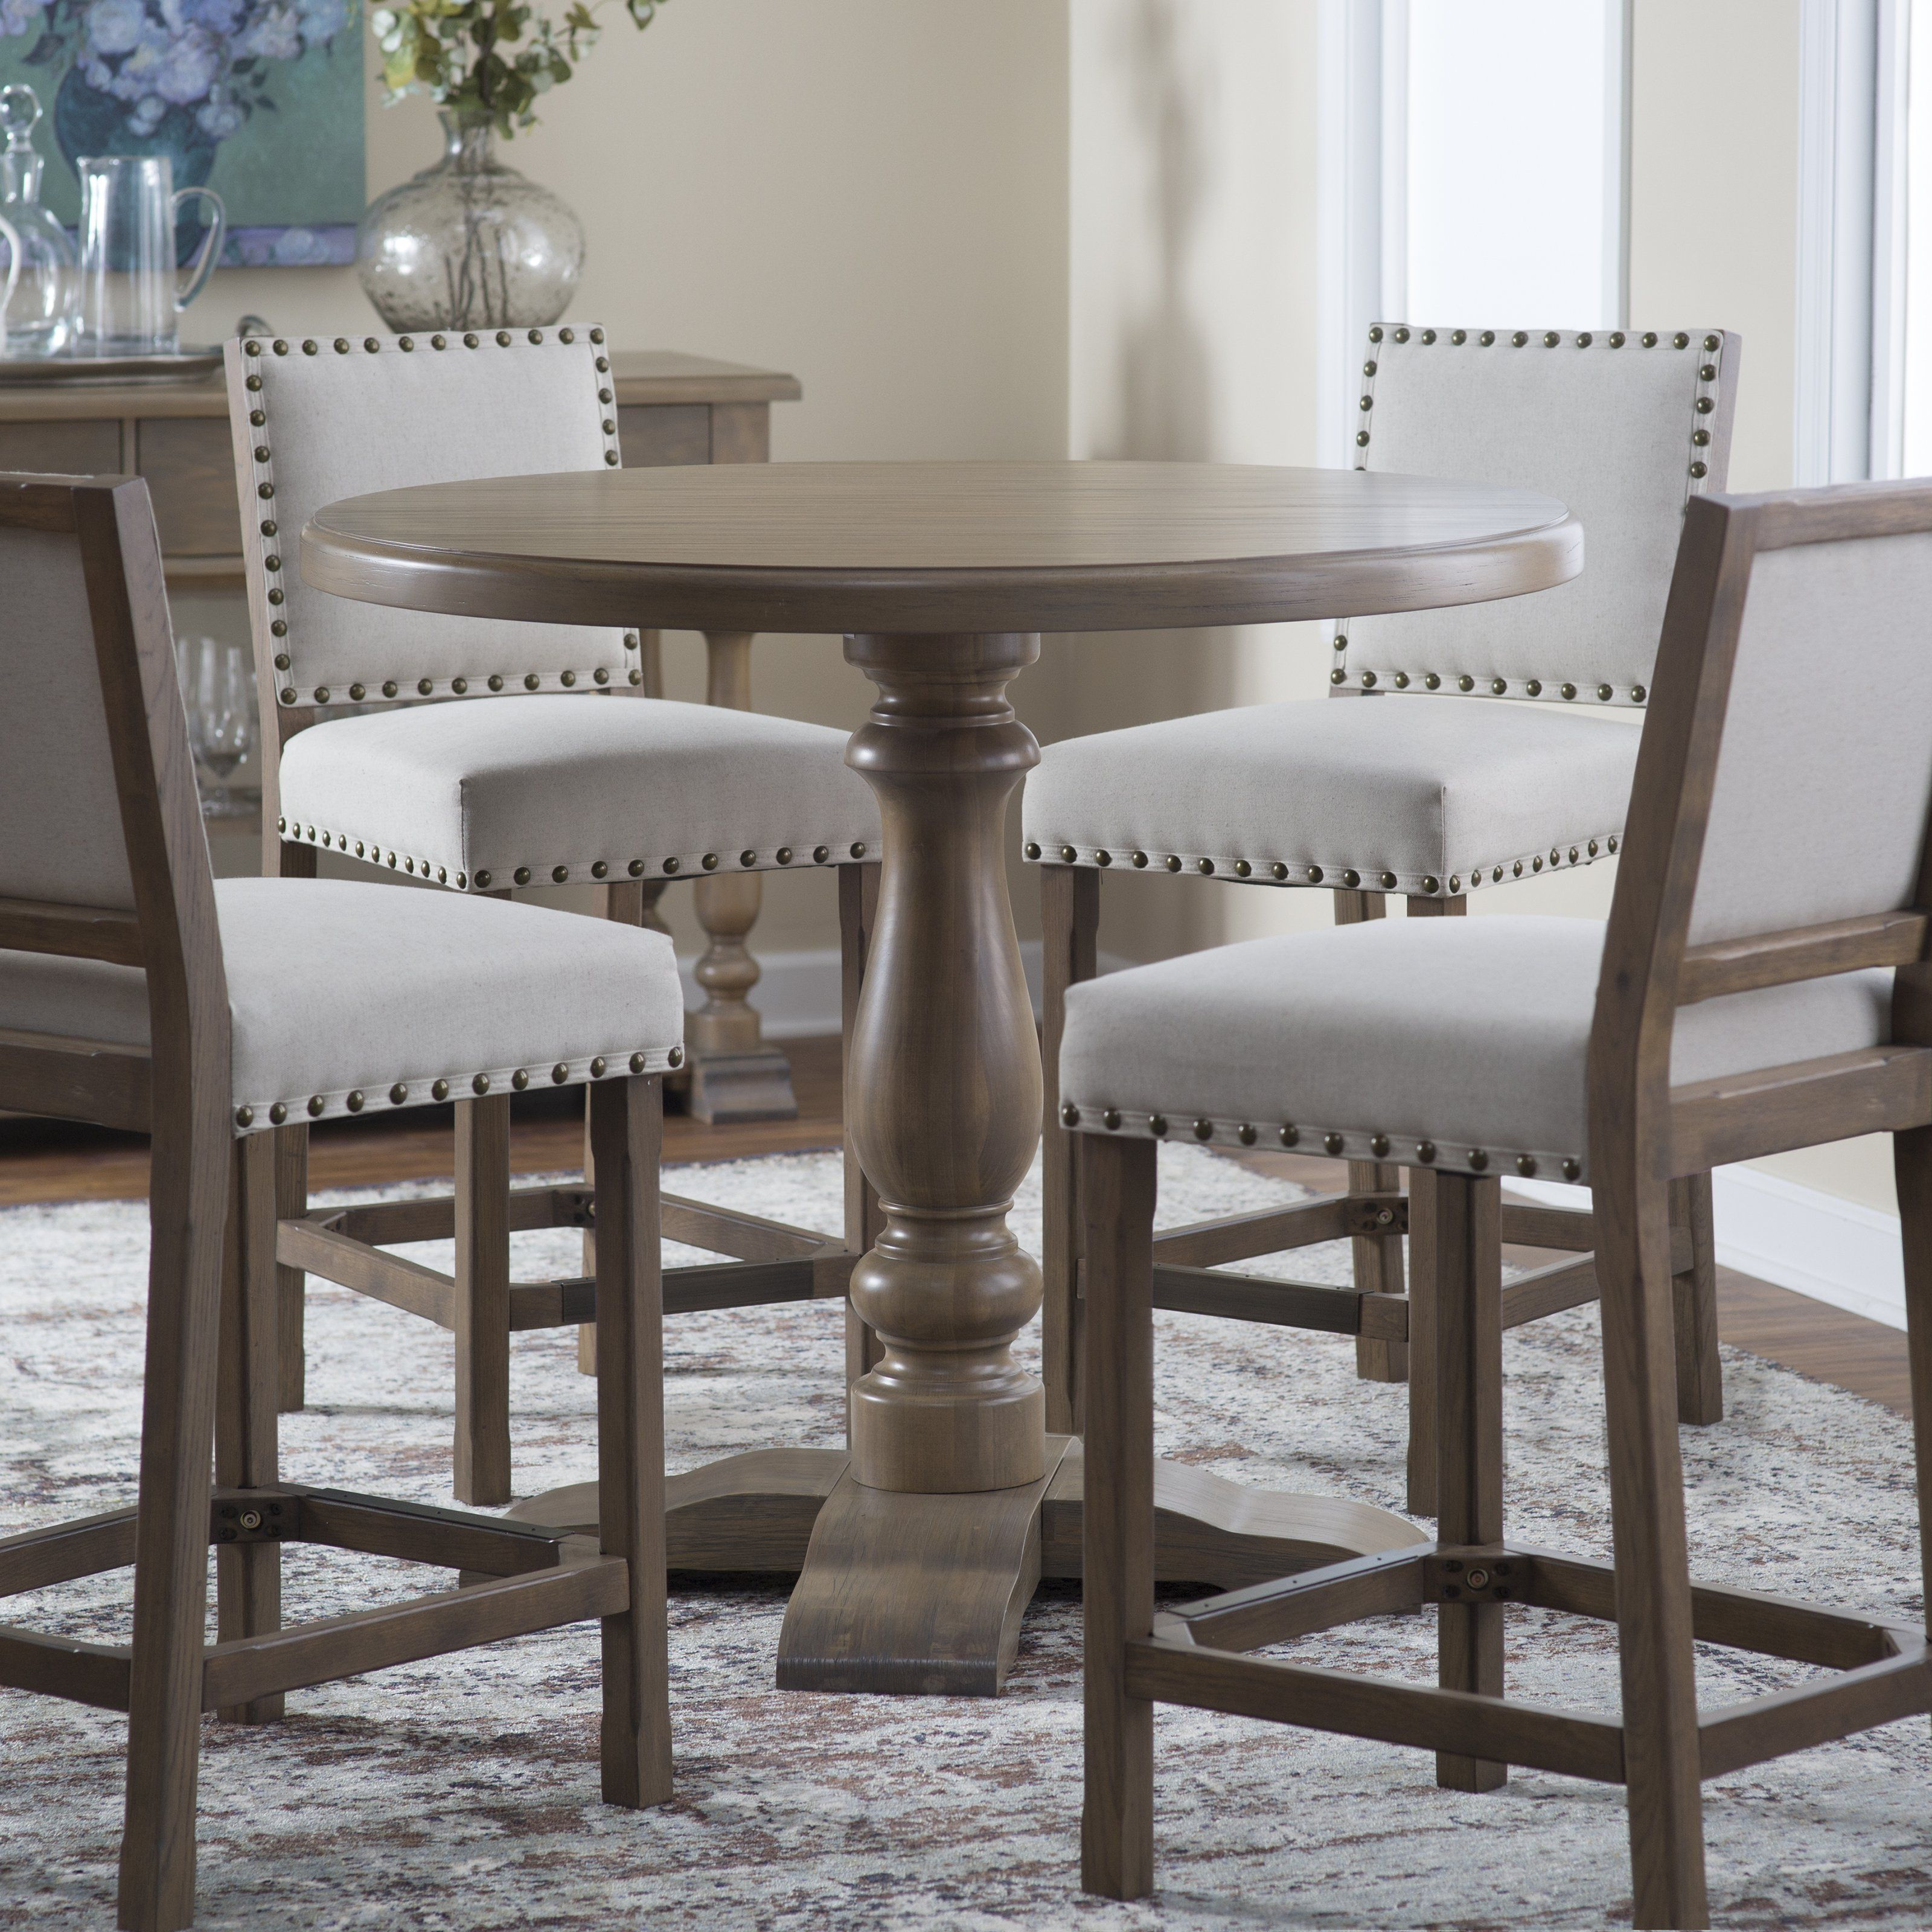 High Quality Belham Living Kennedy Round Counter Height 42 In. Gathering Table   CS 91240